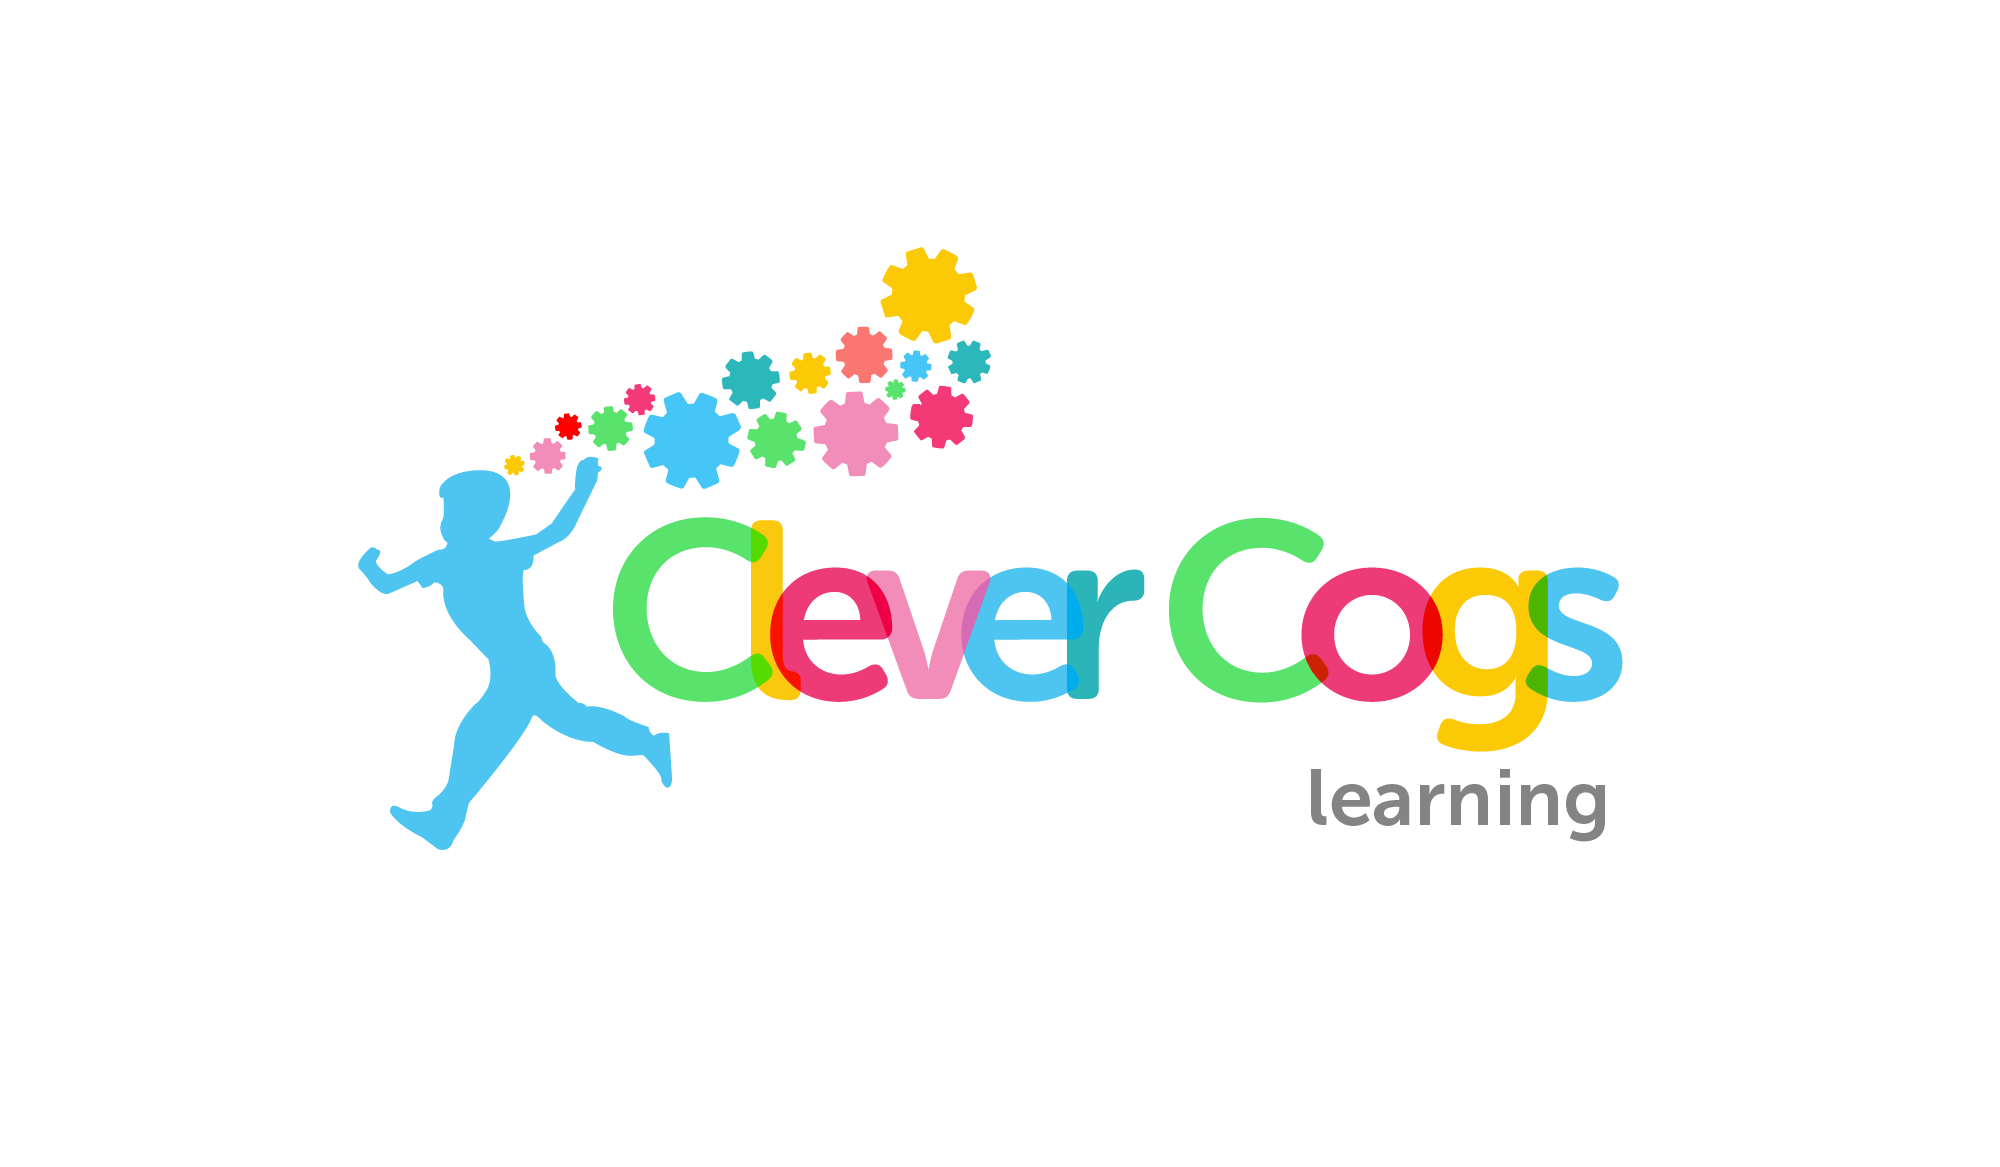 clever_cogs_logo-01.png